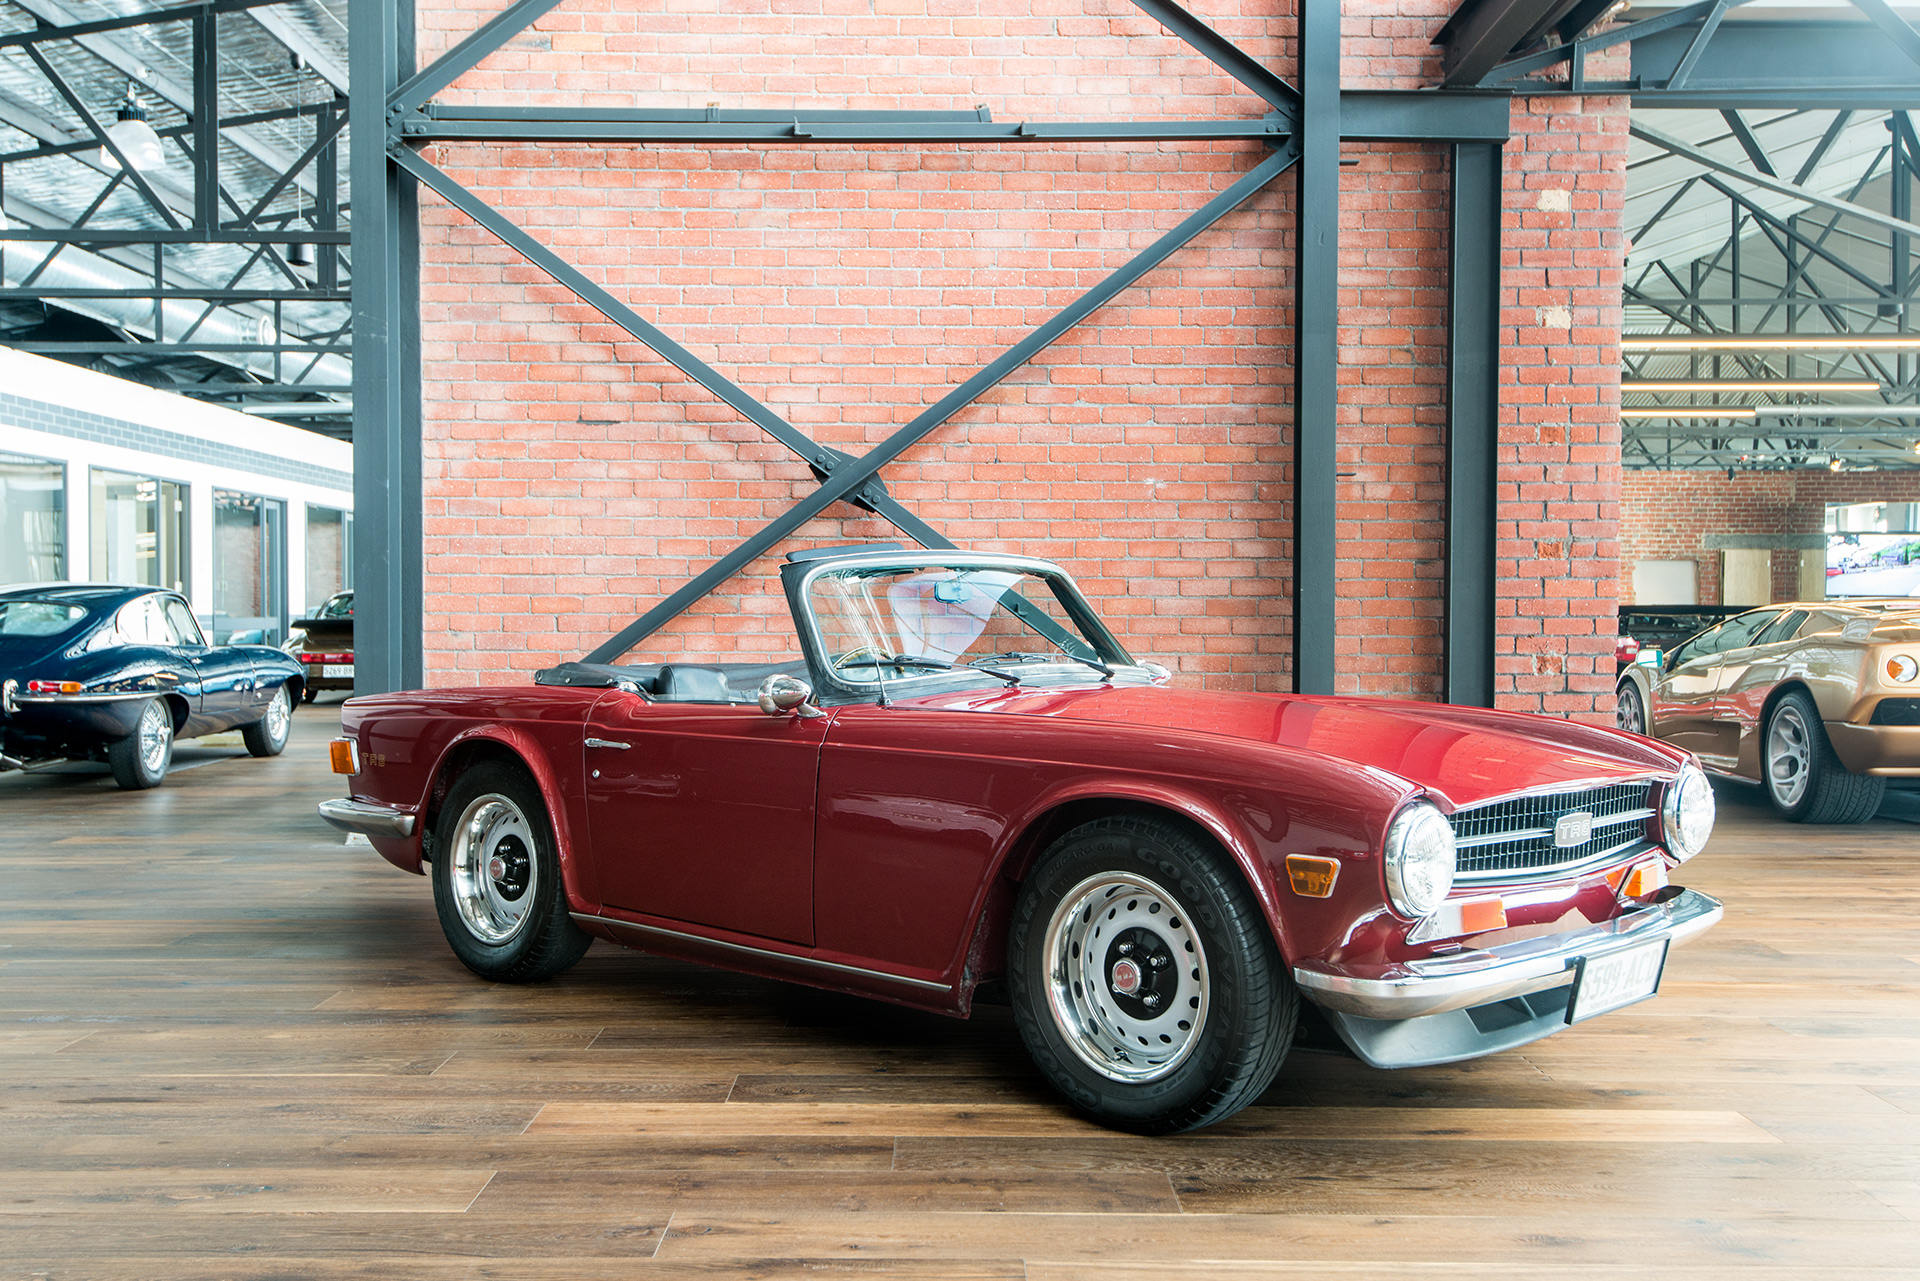 1972 Triumph TR6 - Richmonds - Classic and Prestige Cars - Storage ...